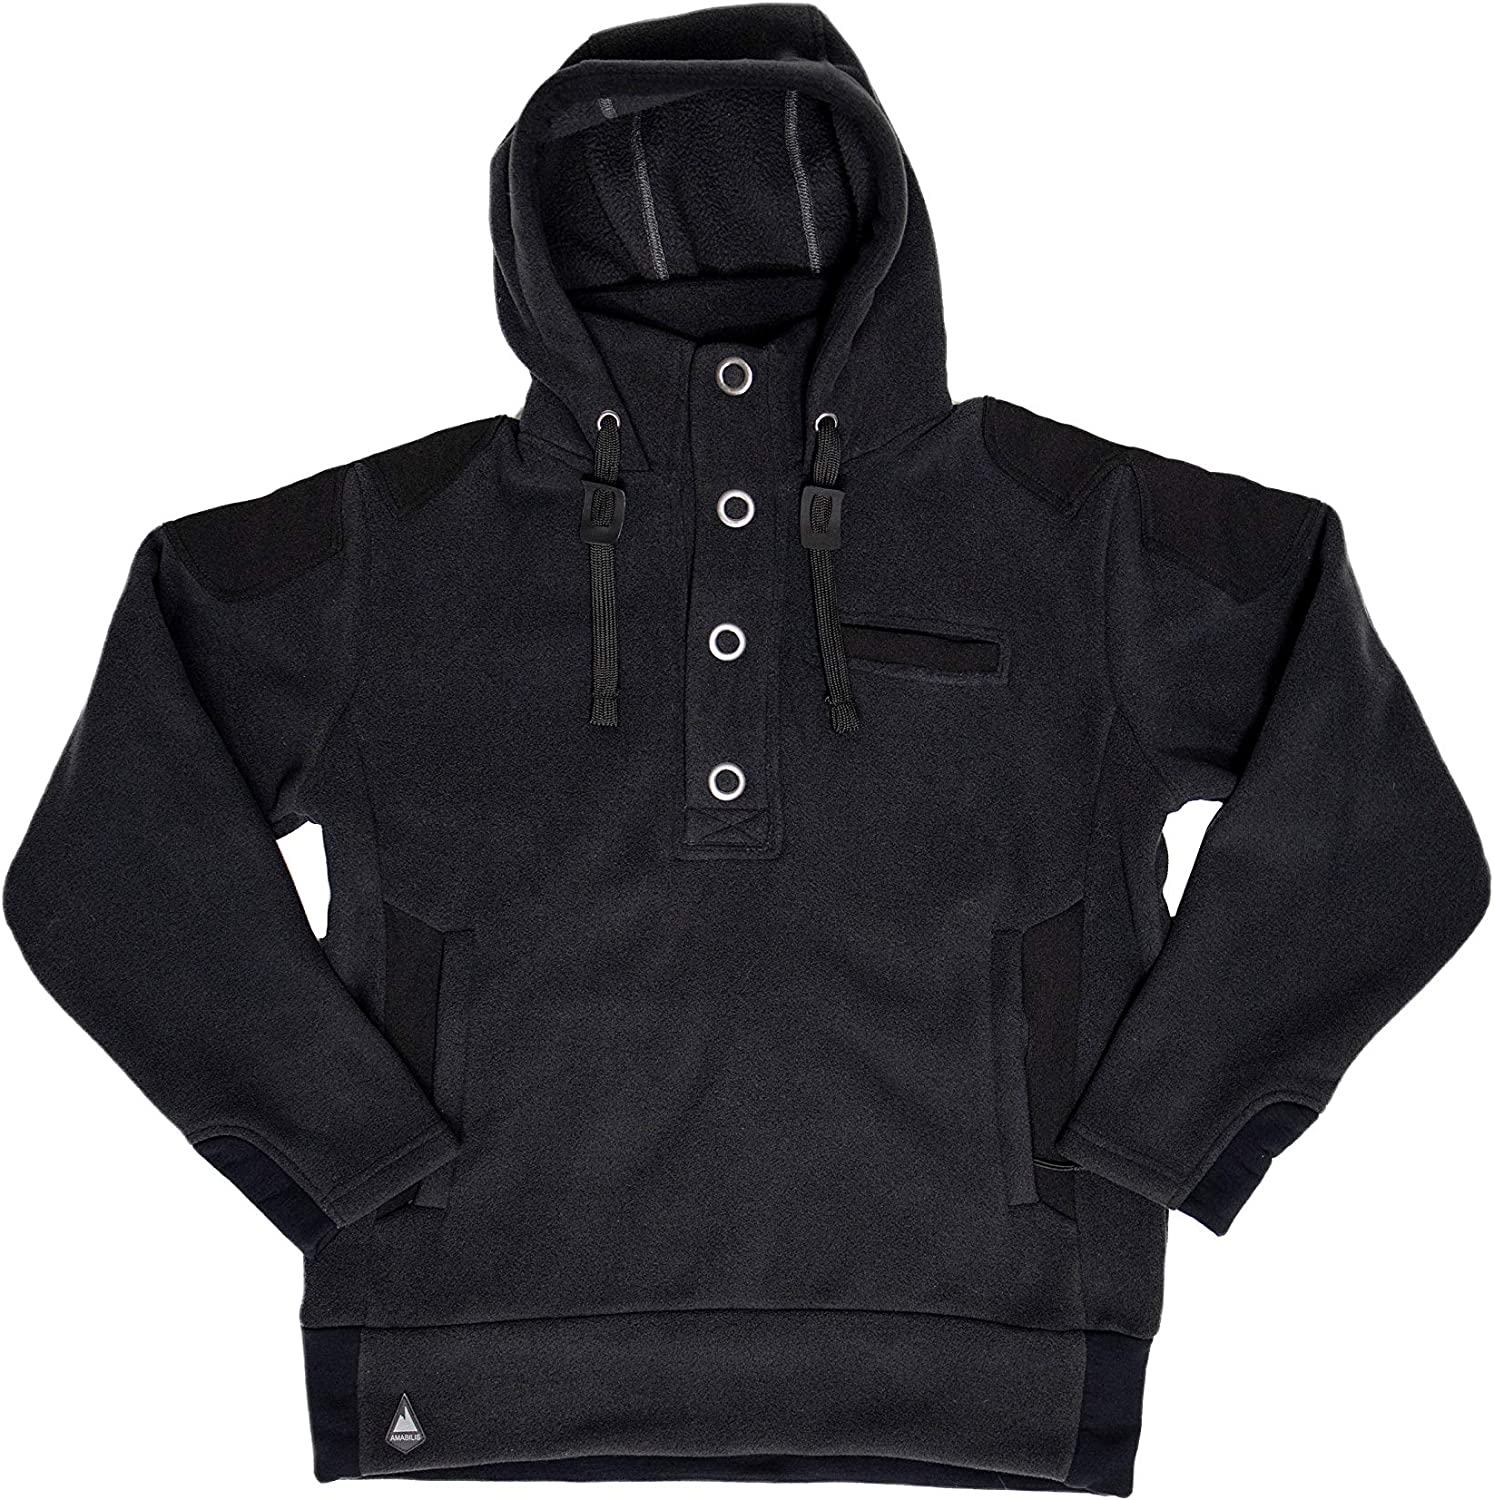 AMABILIS Men's Responder Inexpensive Hoody Pullover Swe Backed Sherpa Hooded Max 71% OFF